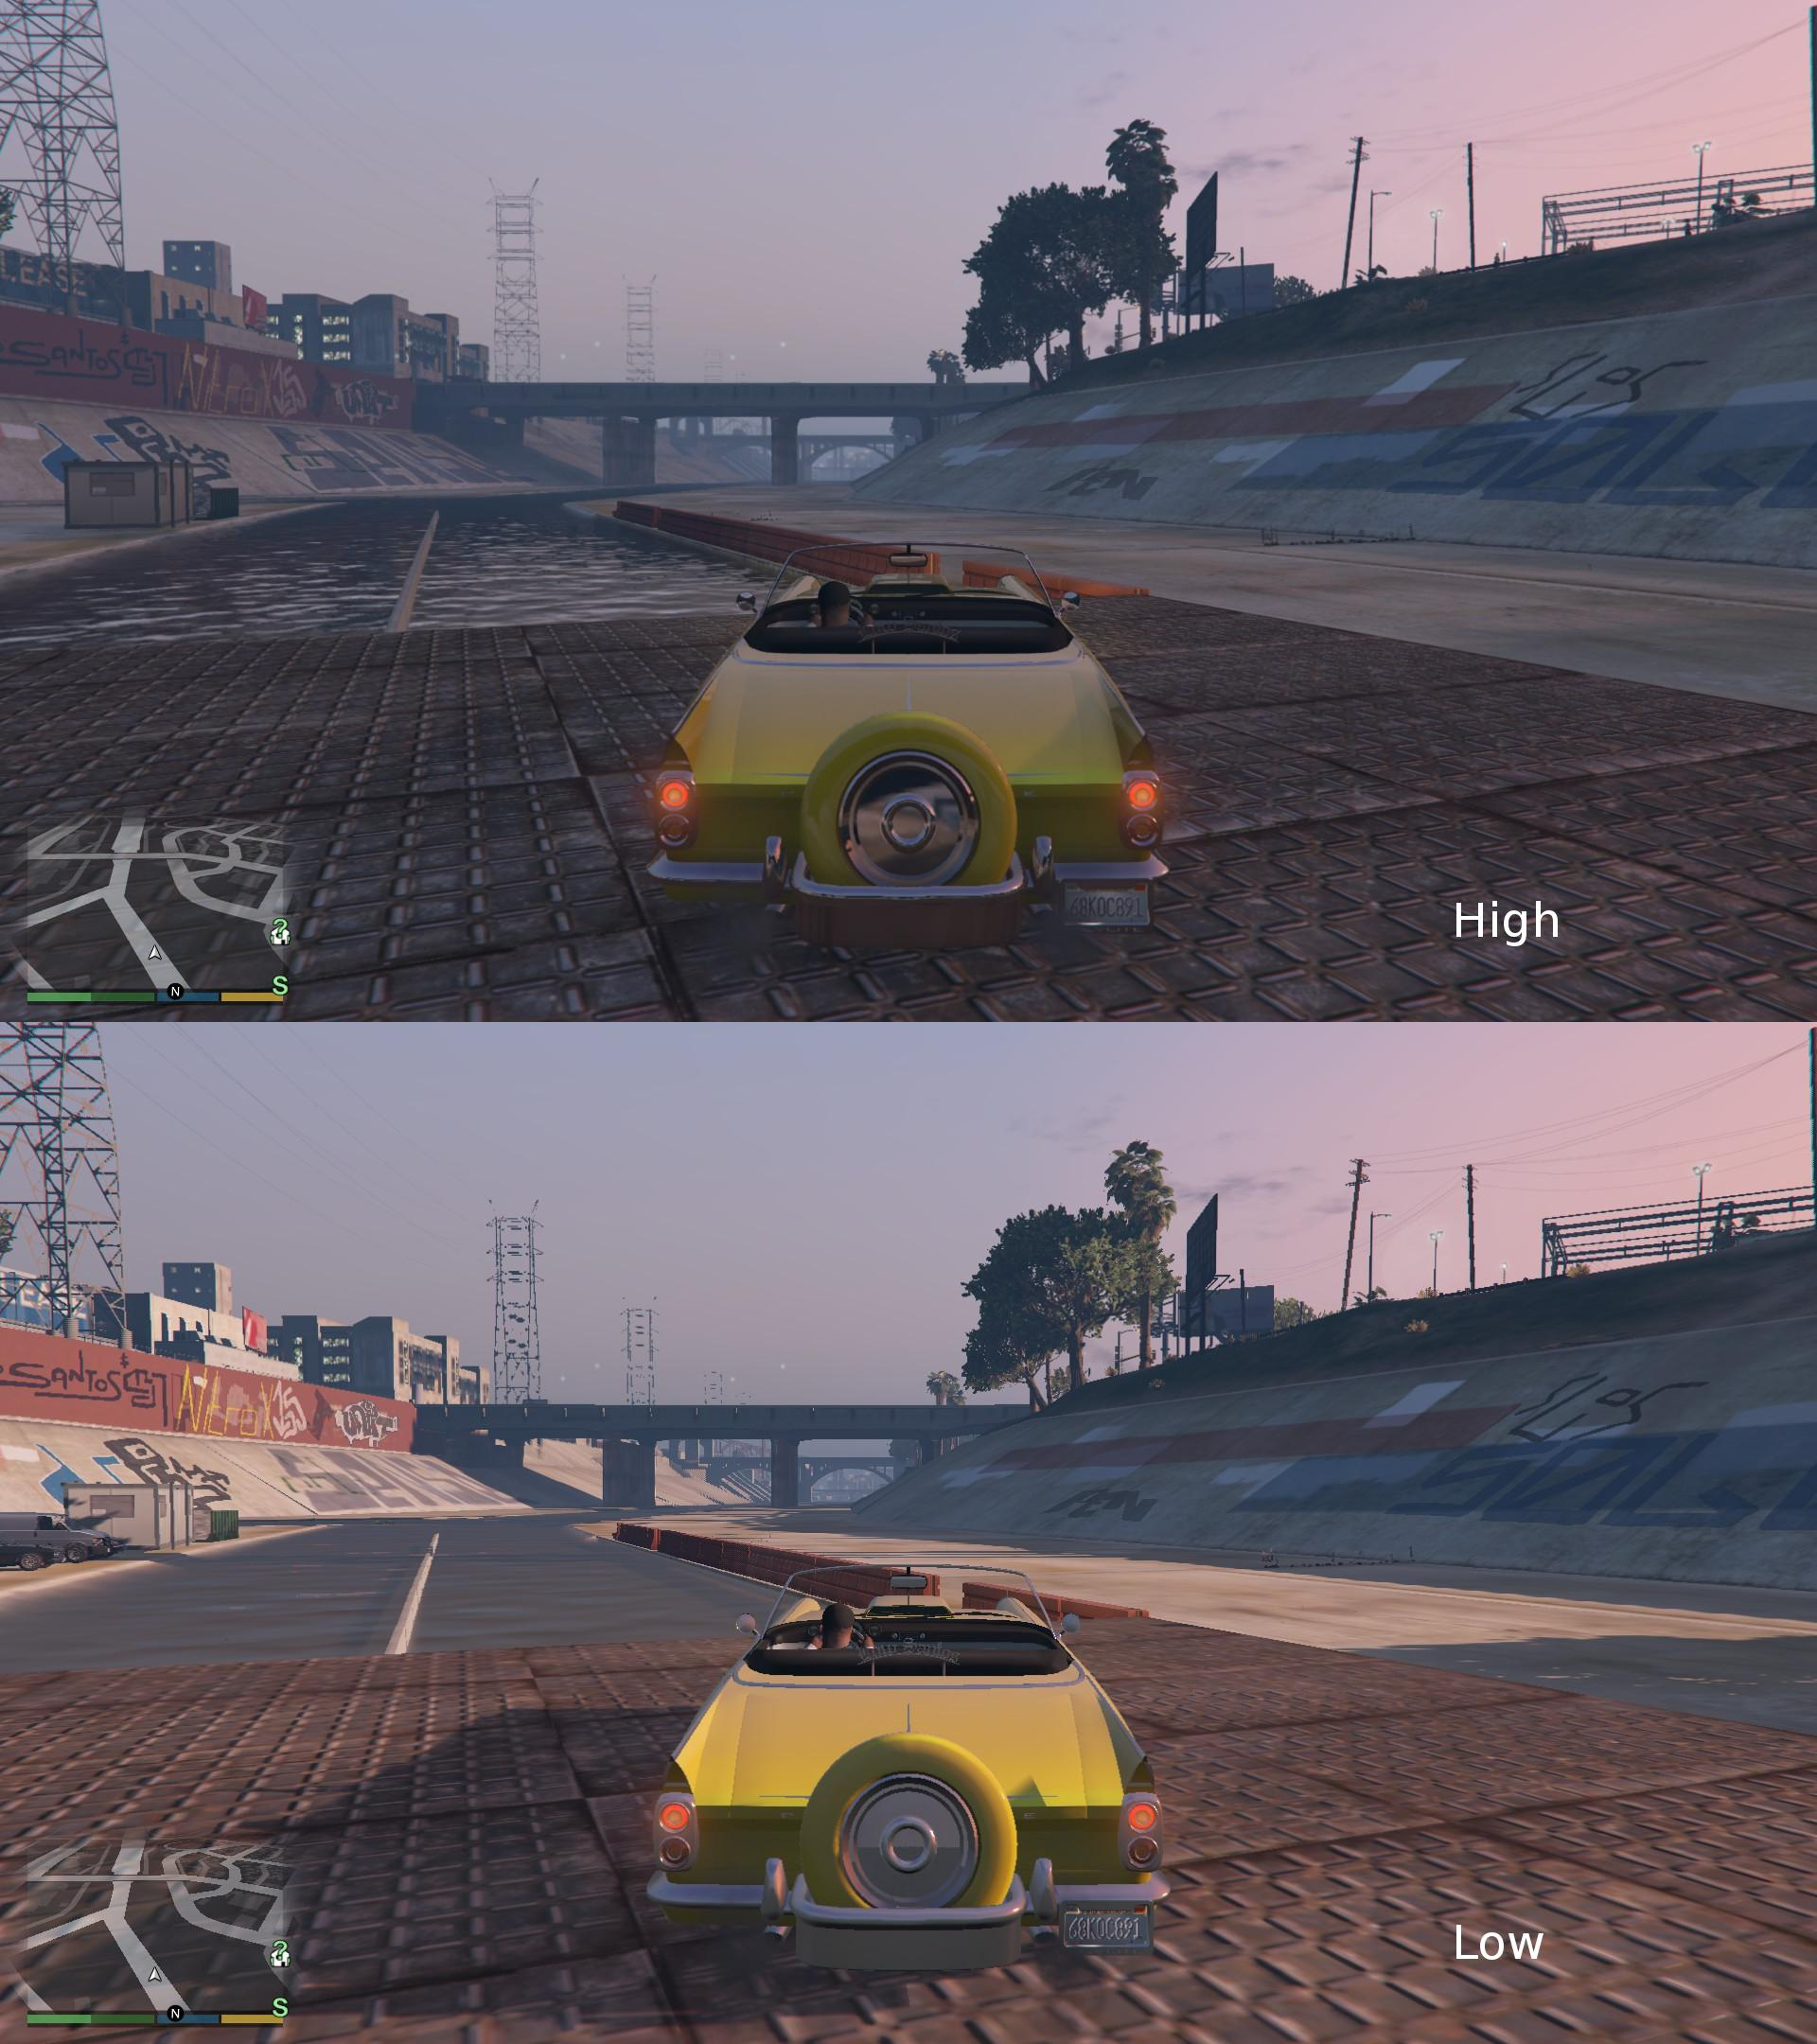 gta 5 pc high and low settings comparison may result in feelings of